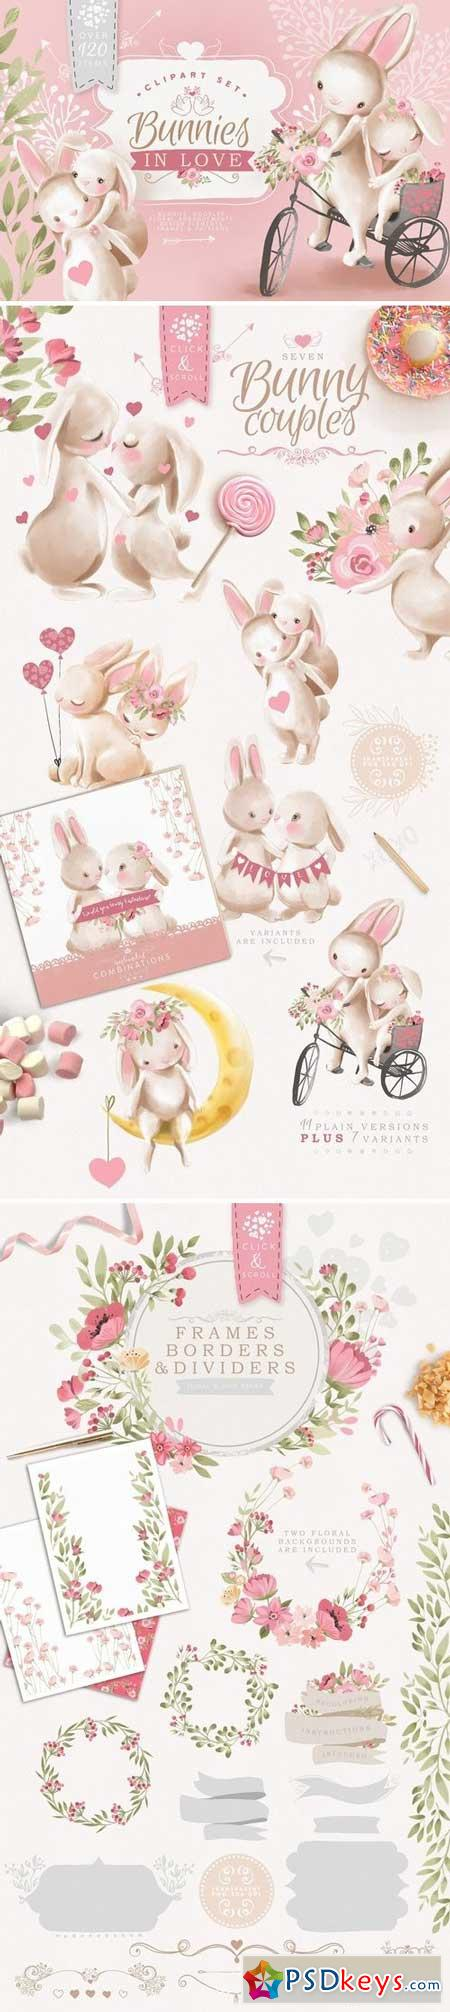 Bunnies In Love Clipart Set 3247077